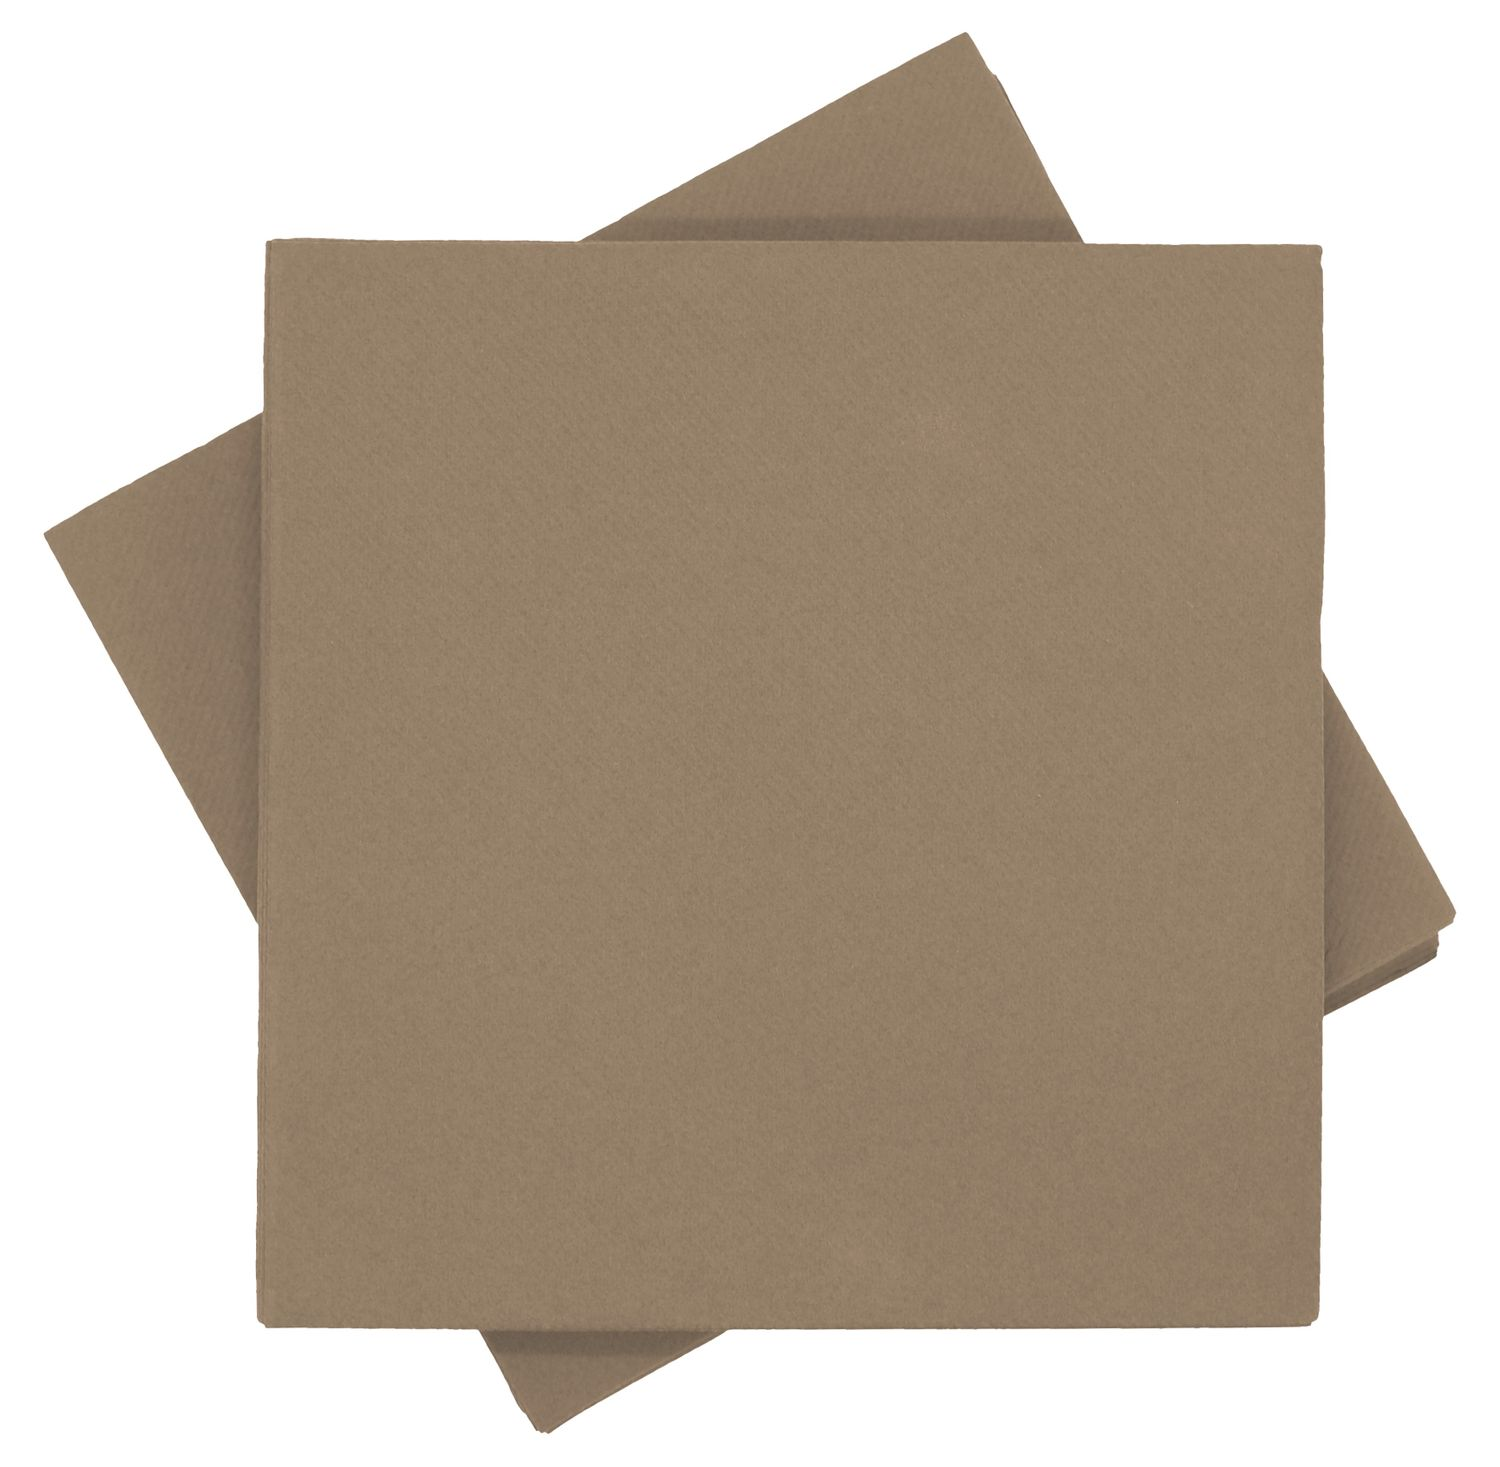 Servietten Tischdeko Taupe Kommunion Konfirmation Sommer Party 40x40 cm 25 Stück